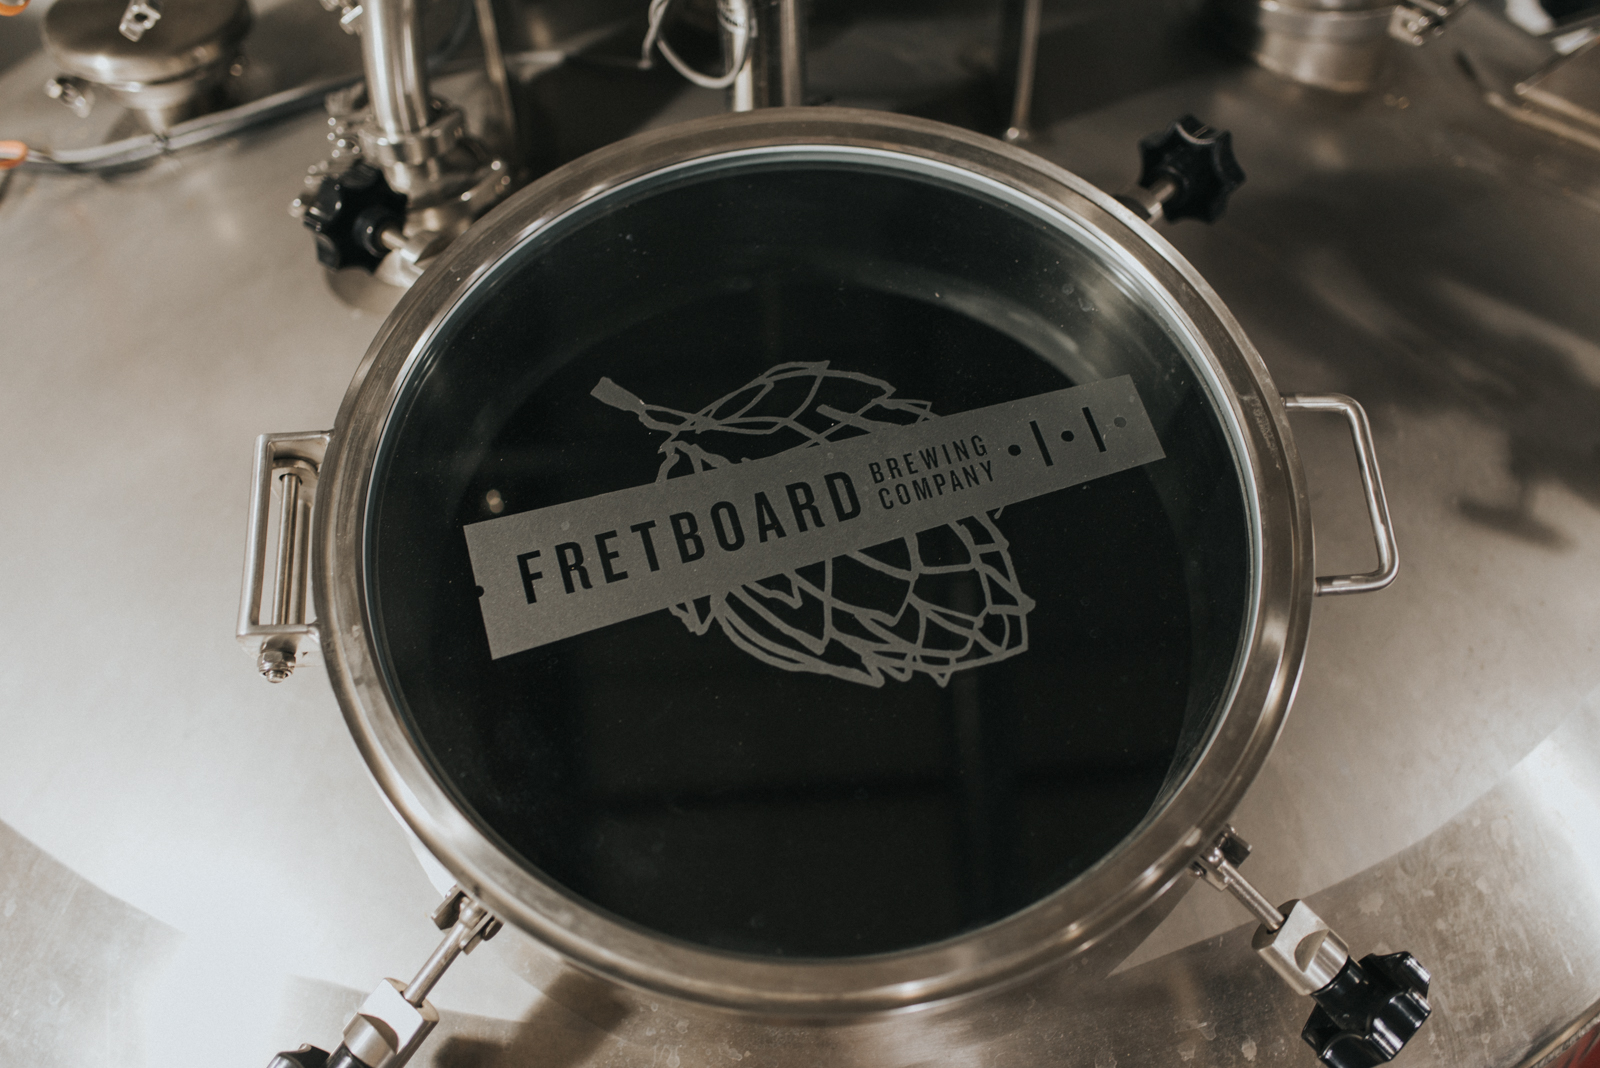 Fretboard Brewing Company is a Blue Ash brewery that features live music every Friday and Saturday night. On other days, it hosts trivia nights, yoga, music seminars, and other special events in addition to serving beer in its taproom. In-house BBQ joint, Smoked Out Cincy, provides a culinary companion to Fretboard's beer. Pool, corn hole, and giant Jenga are also included in the taproom. ADDRESS: 5800 Creek Road (45242) / Image: Brianna Long // Published: 4.13.18